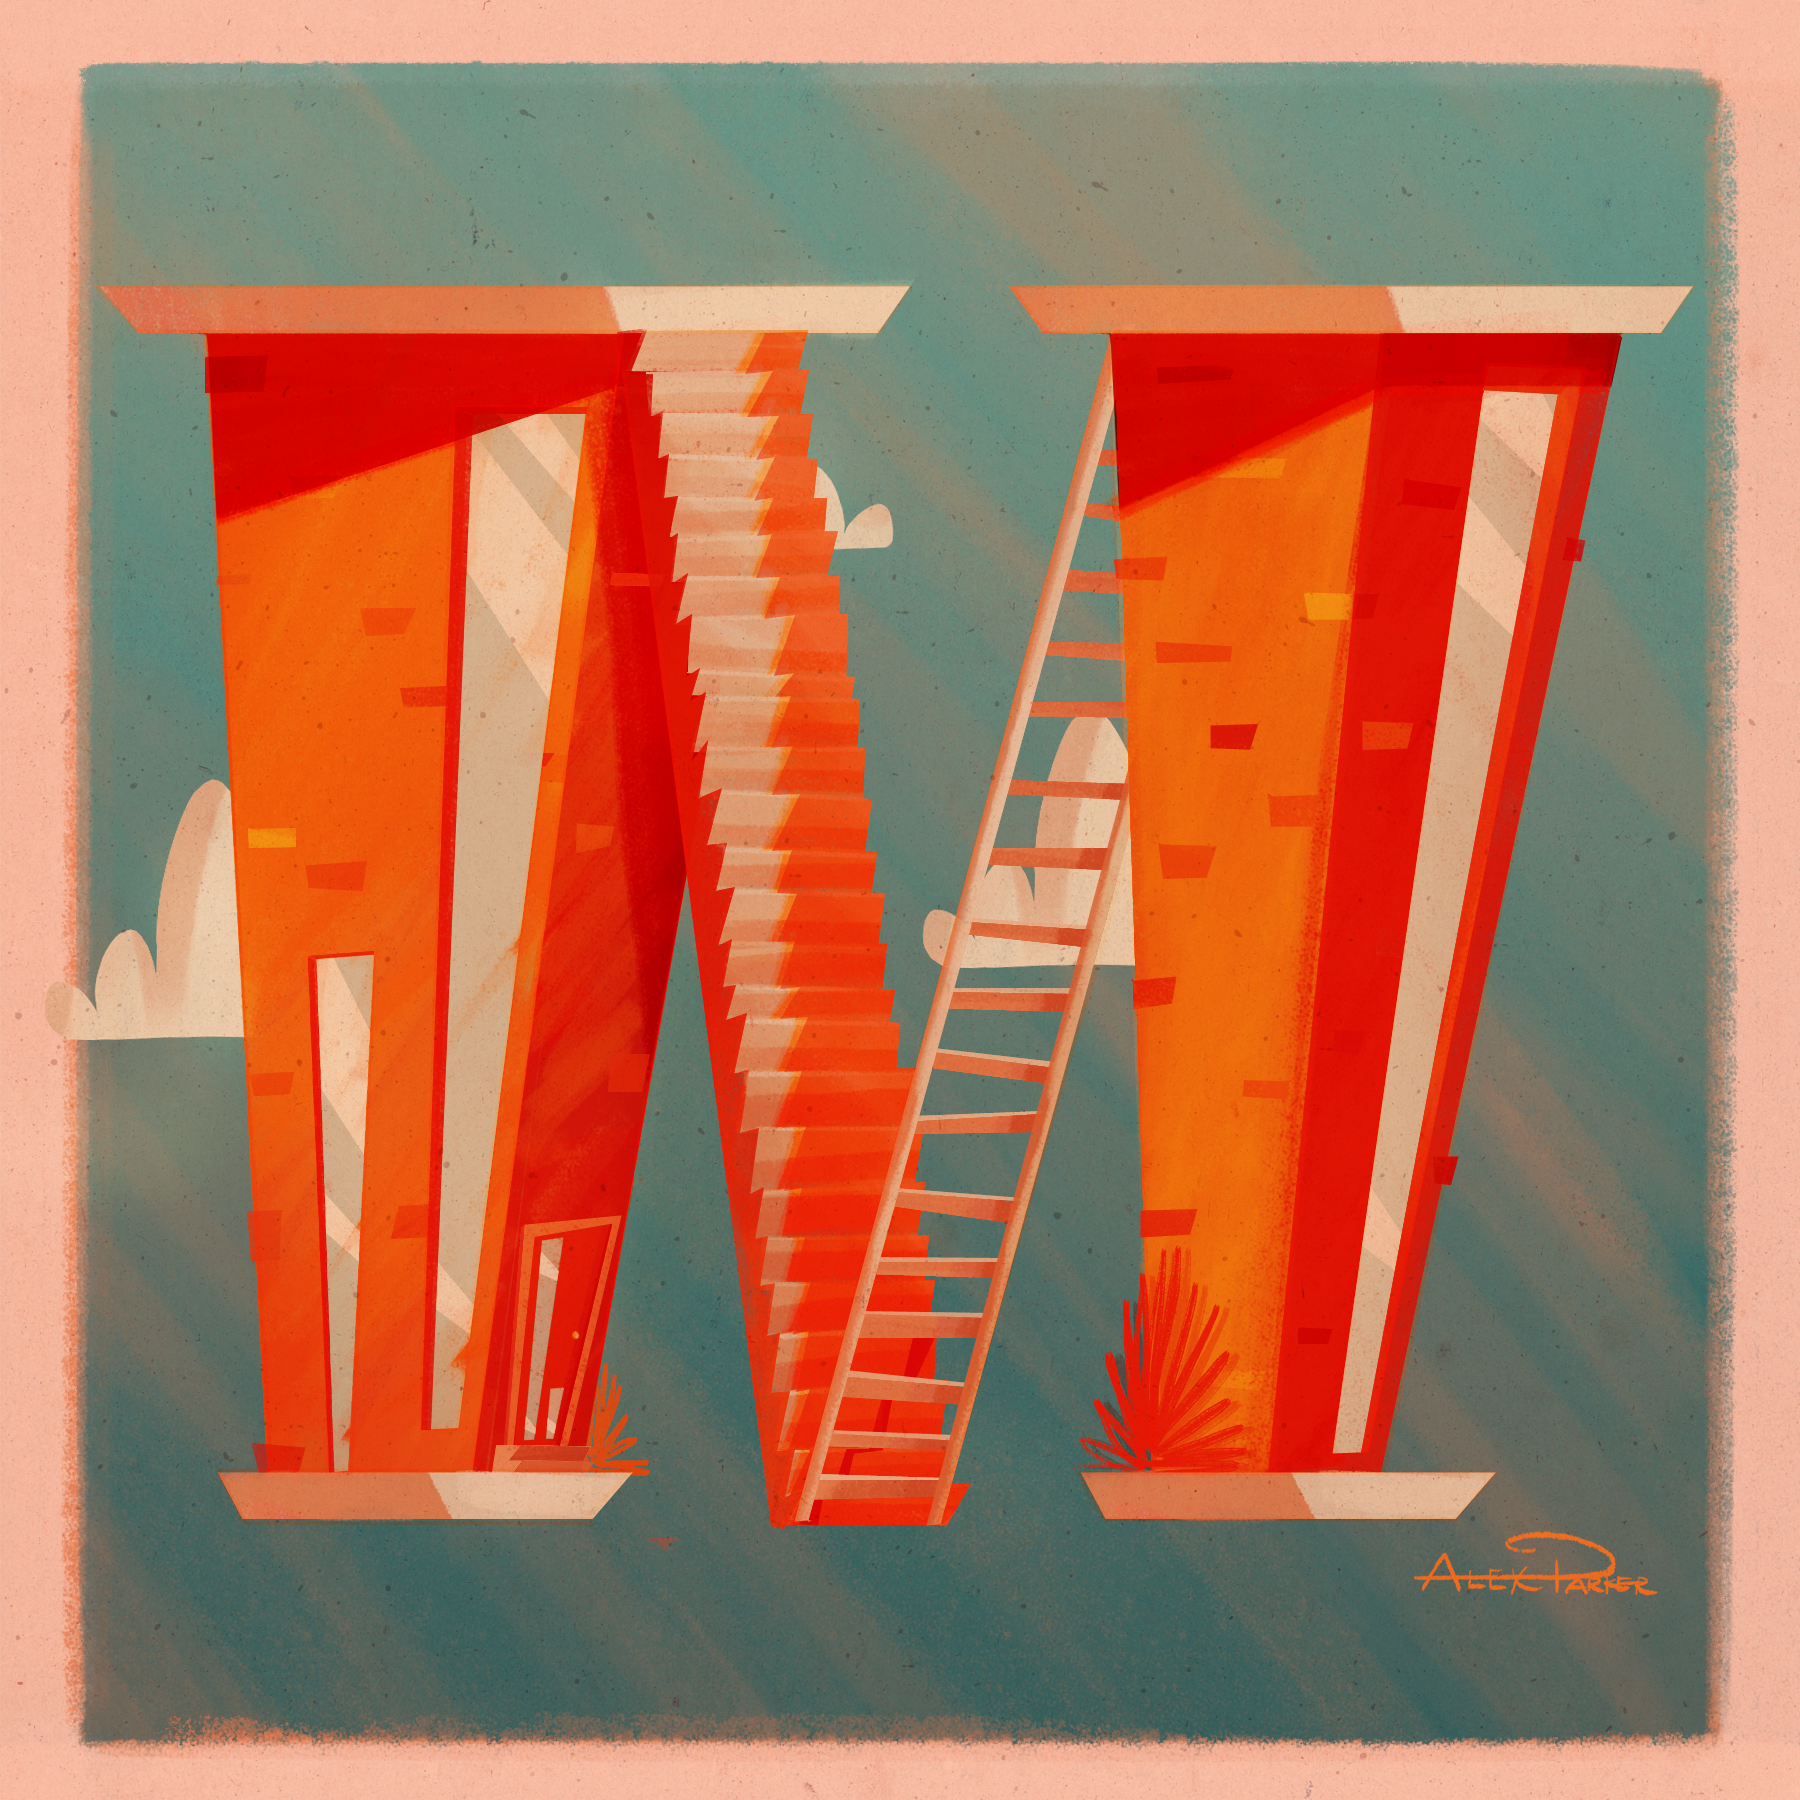 36DaysofType_M.png